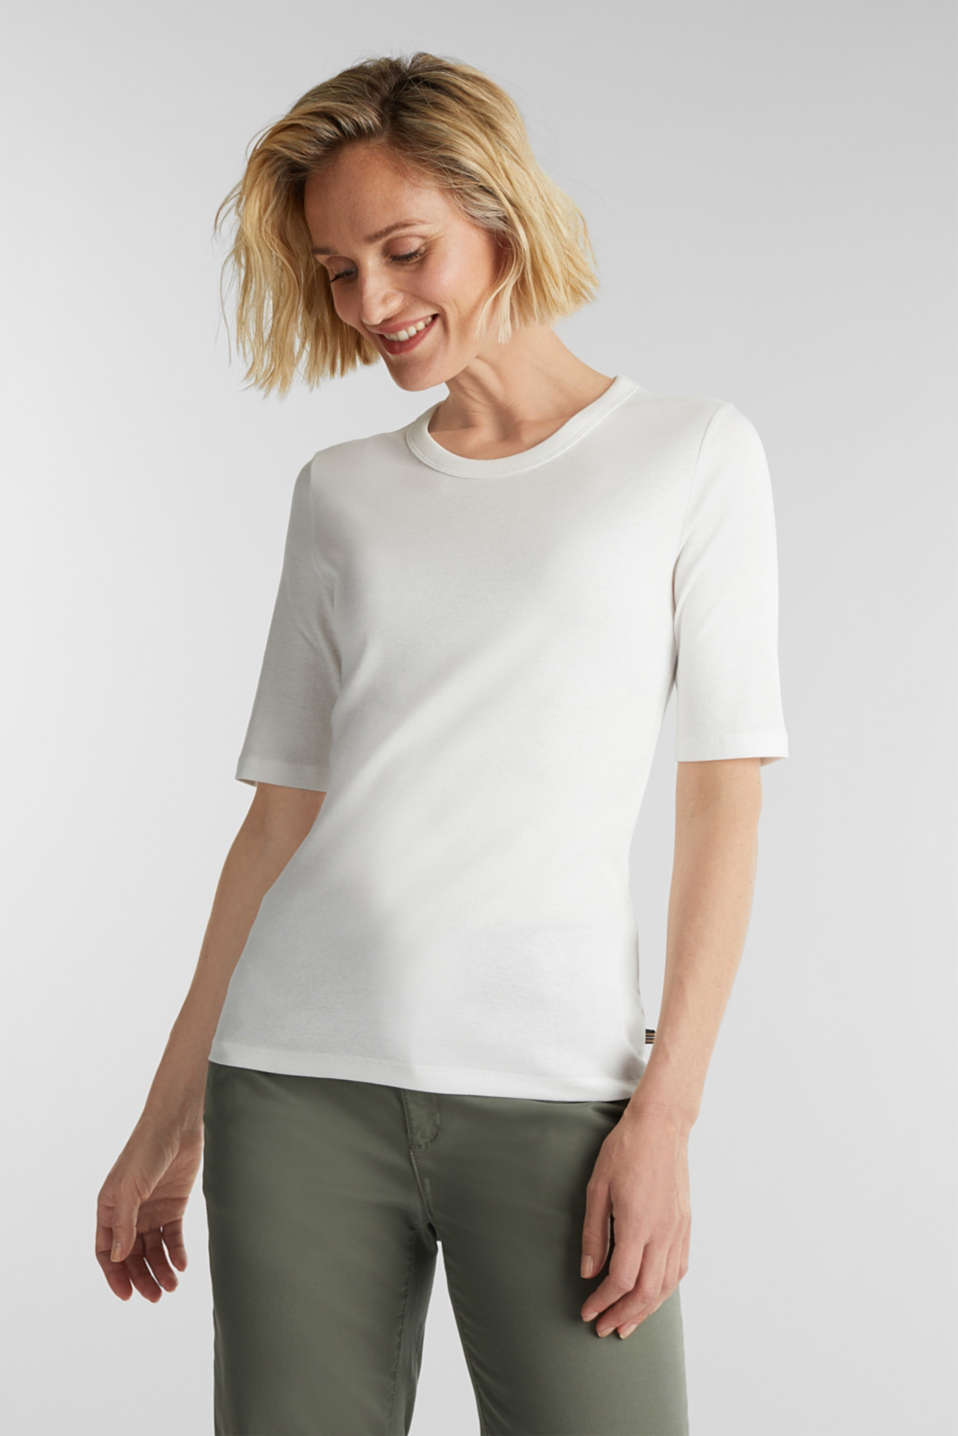 Esprit - Ribbed T-shirt made of 100% organic cotton